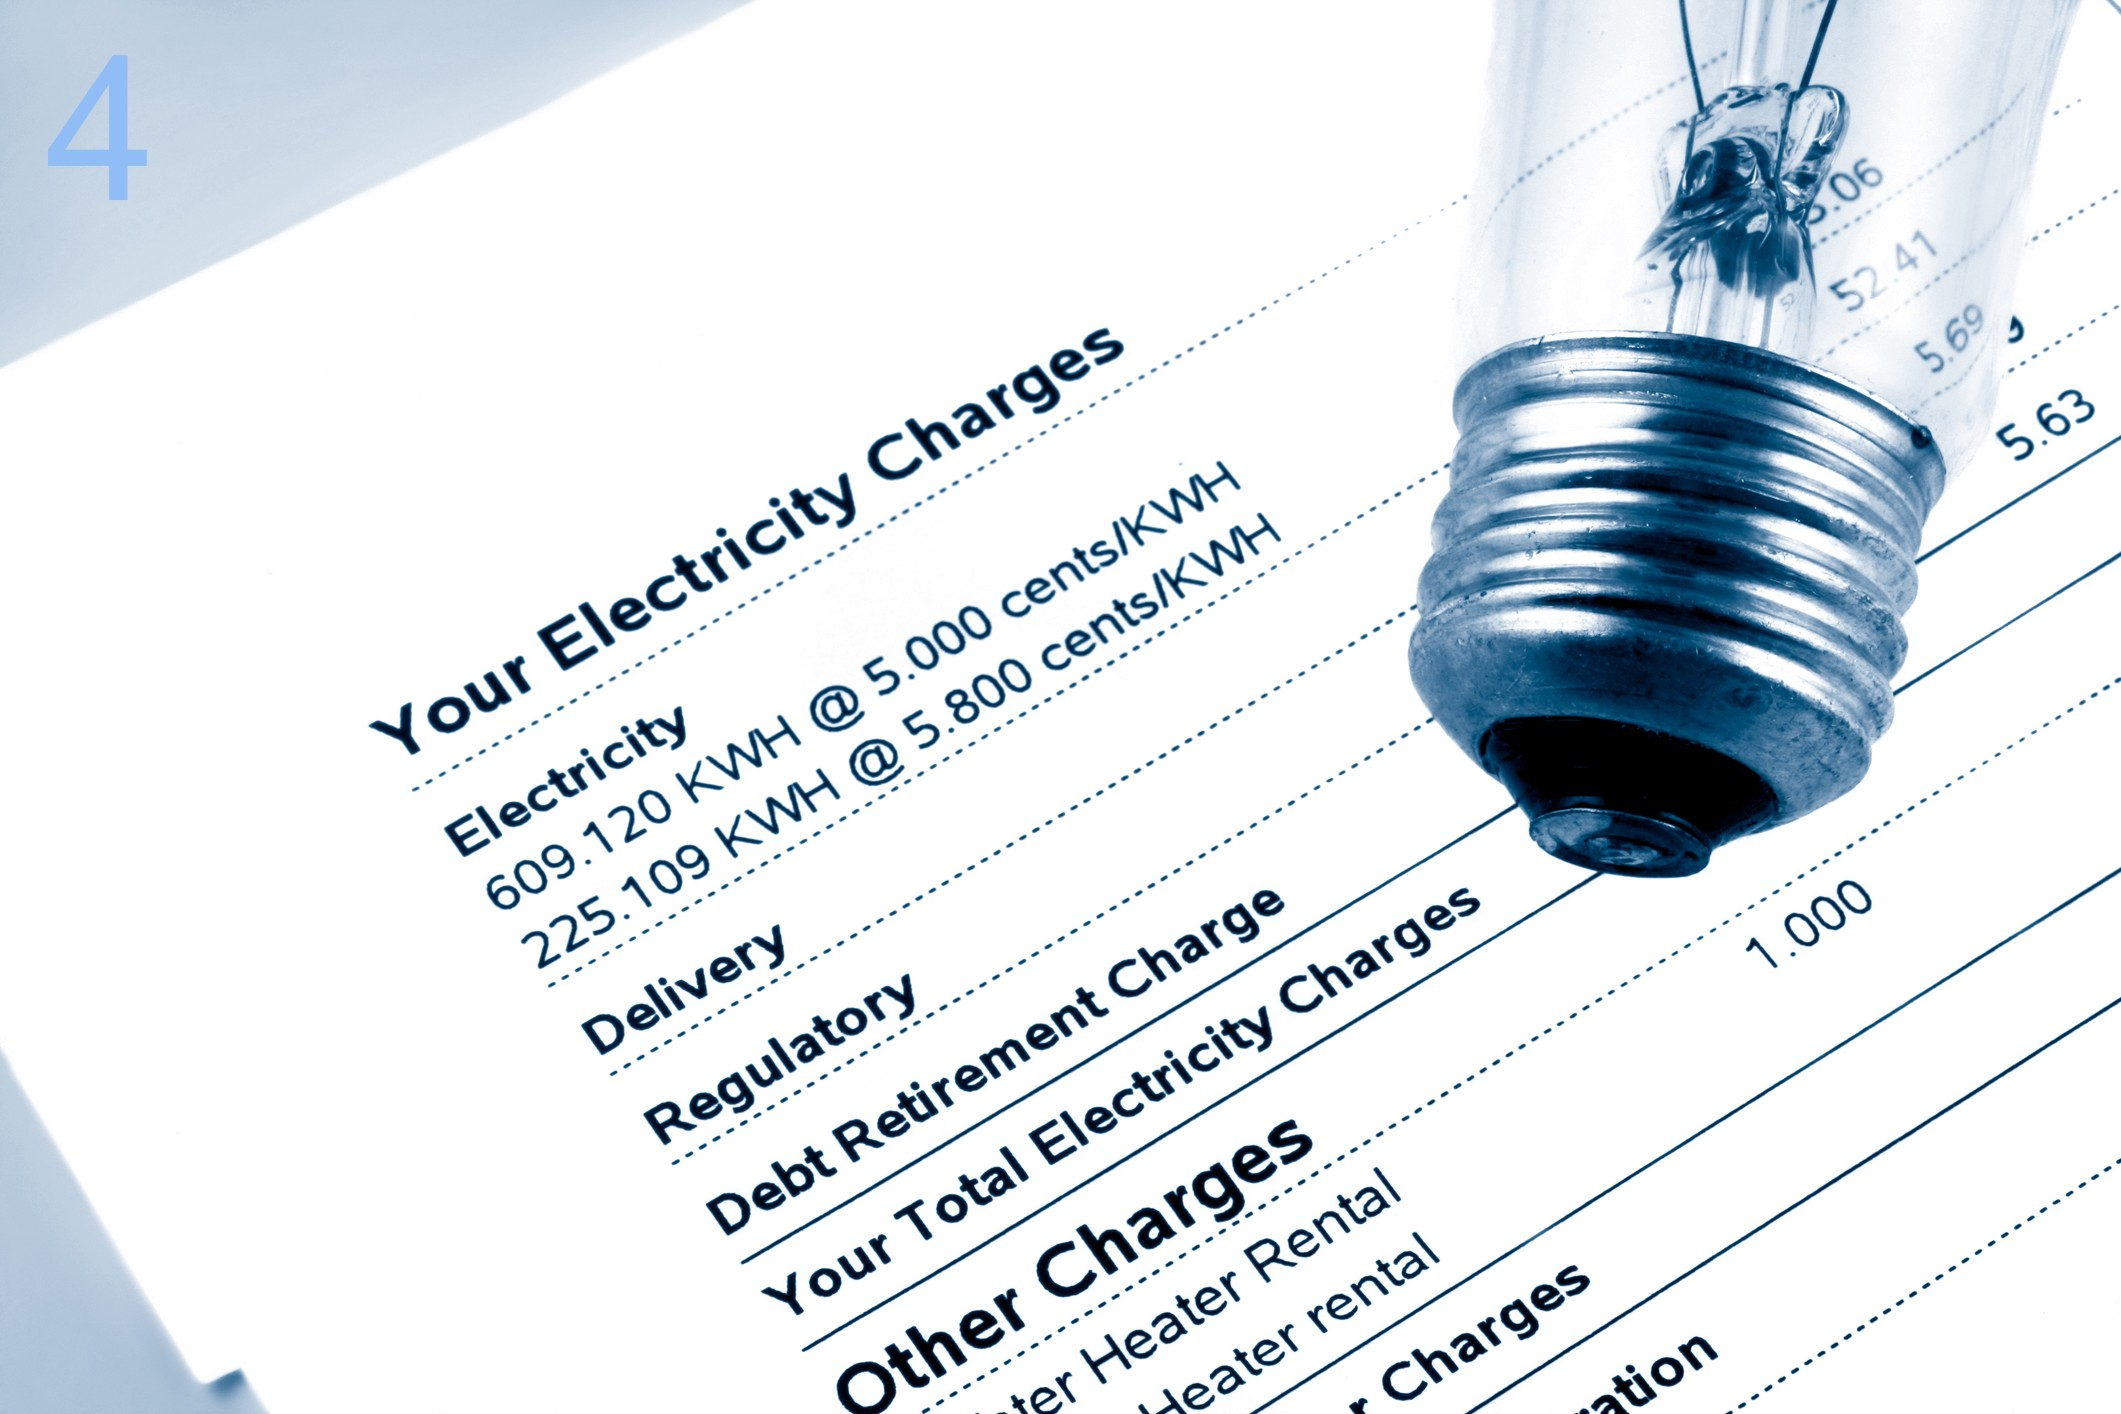 Design and Implementation of an Electricity Bill Management System